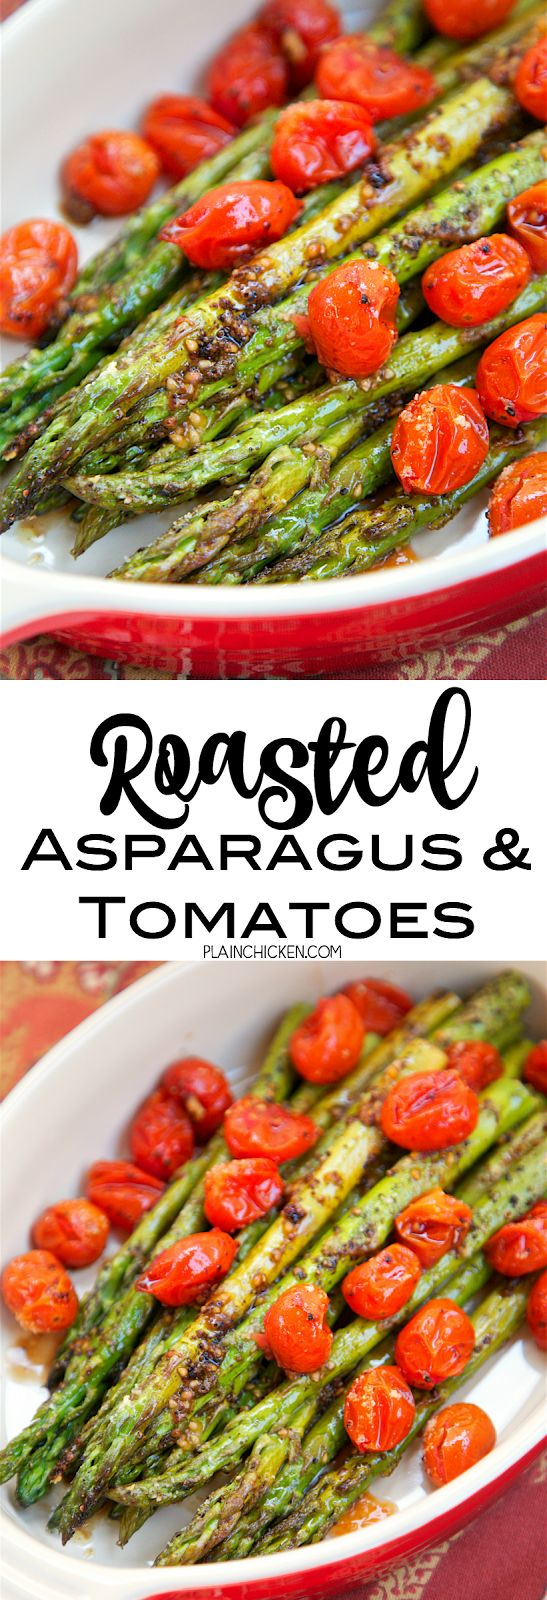 Roasted Asparagus and Tomatoes - Plain Chicken - takes one minute to toss together and is ready to eat in 15 minutes! SO quick and easy!! Asparagus,grape tomatoes, olive oil, balsamic, parmesan. Great weeknight side dish. Goes with everything! YUM!